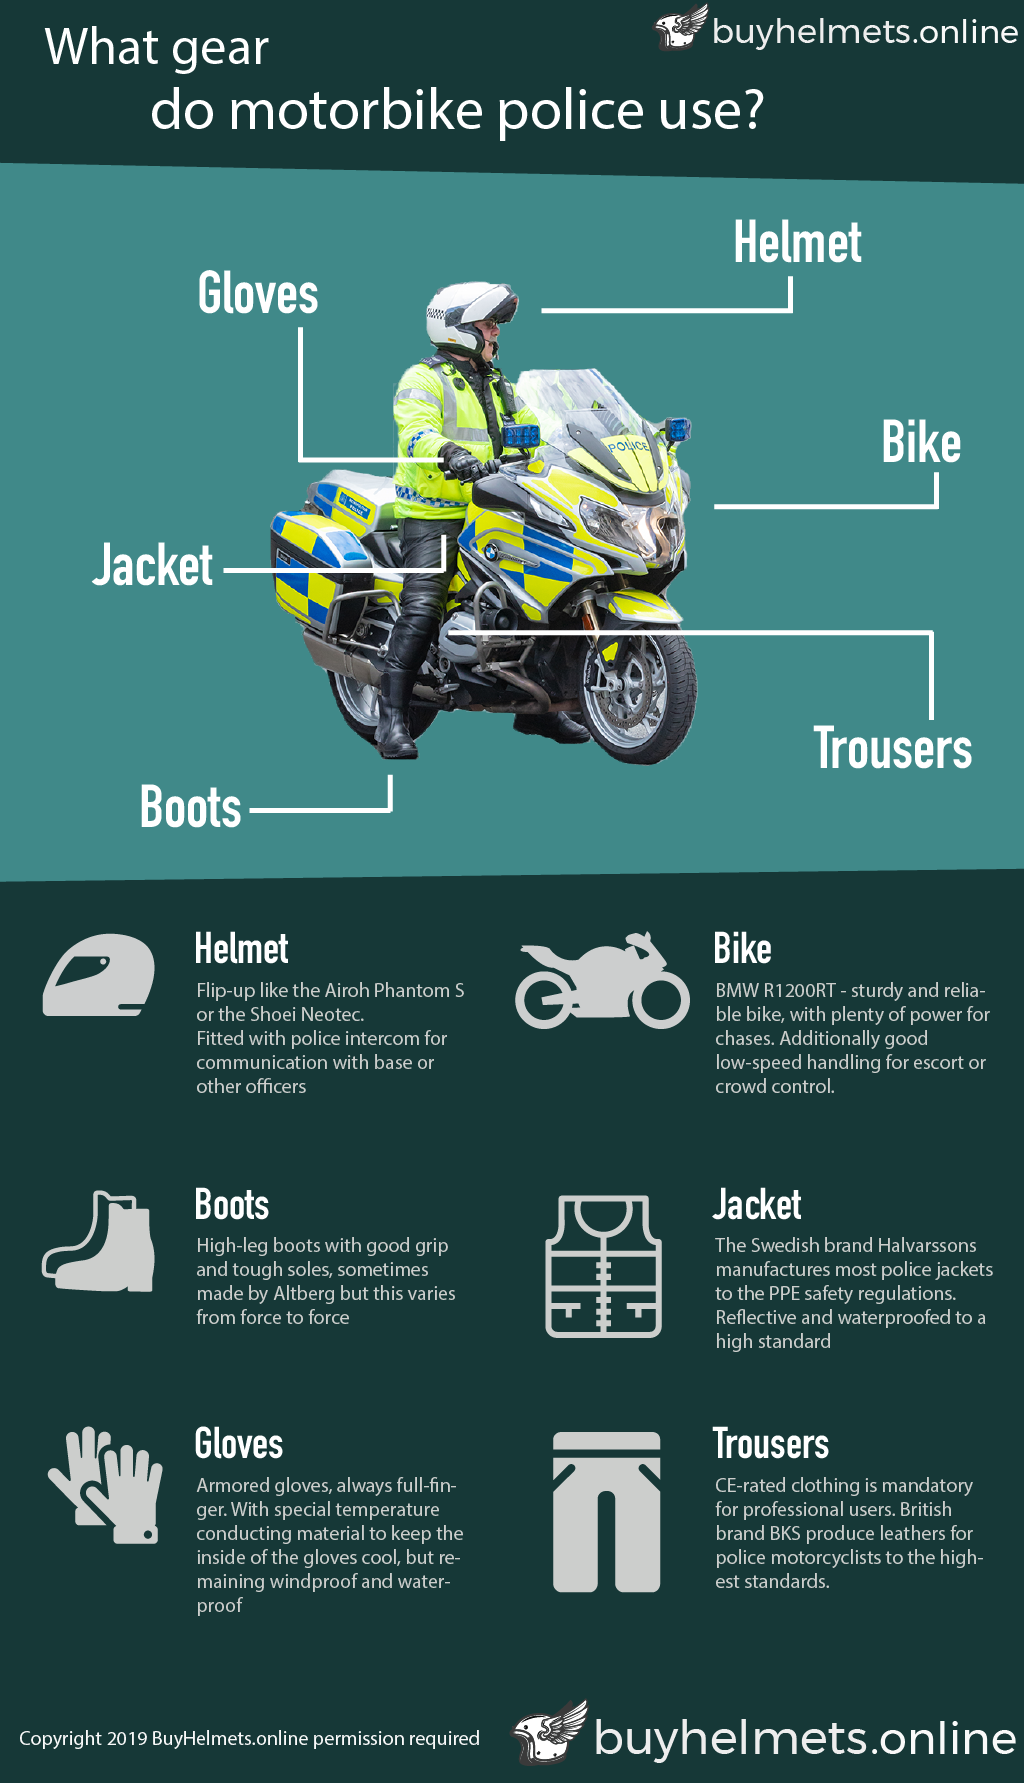 Infographic of the equipment that UK motorcycle police wear and use when riding their motorbikes